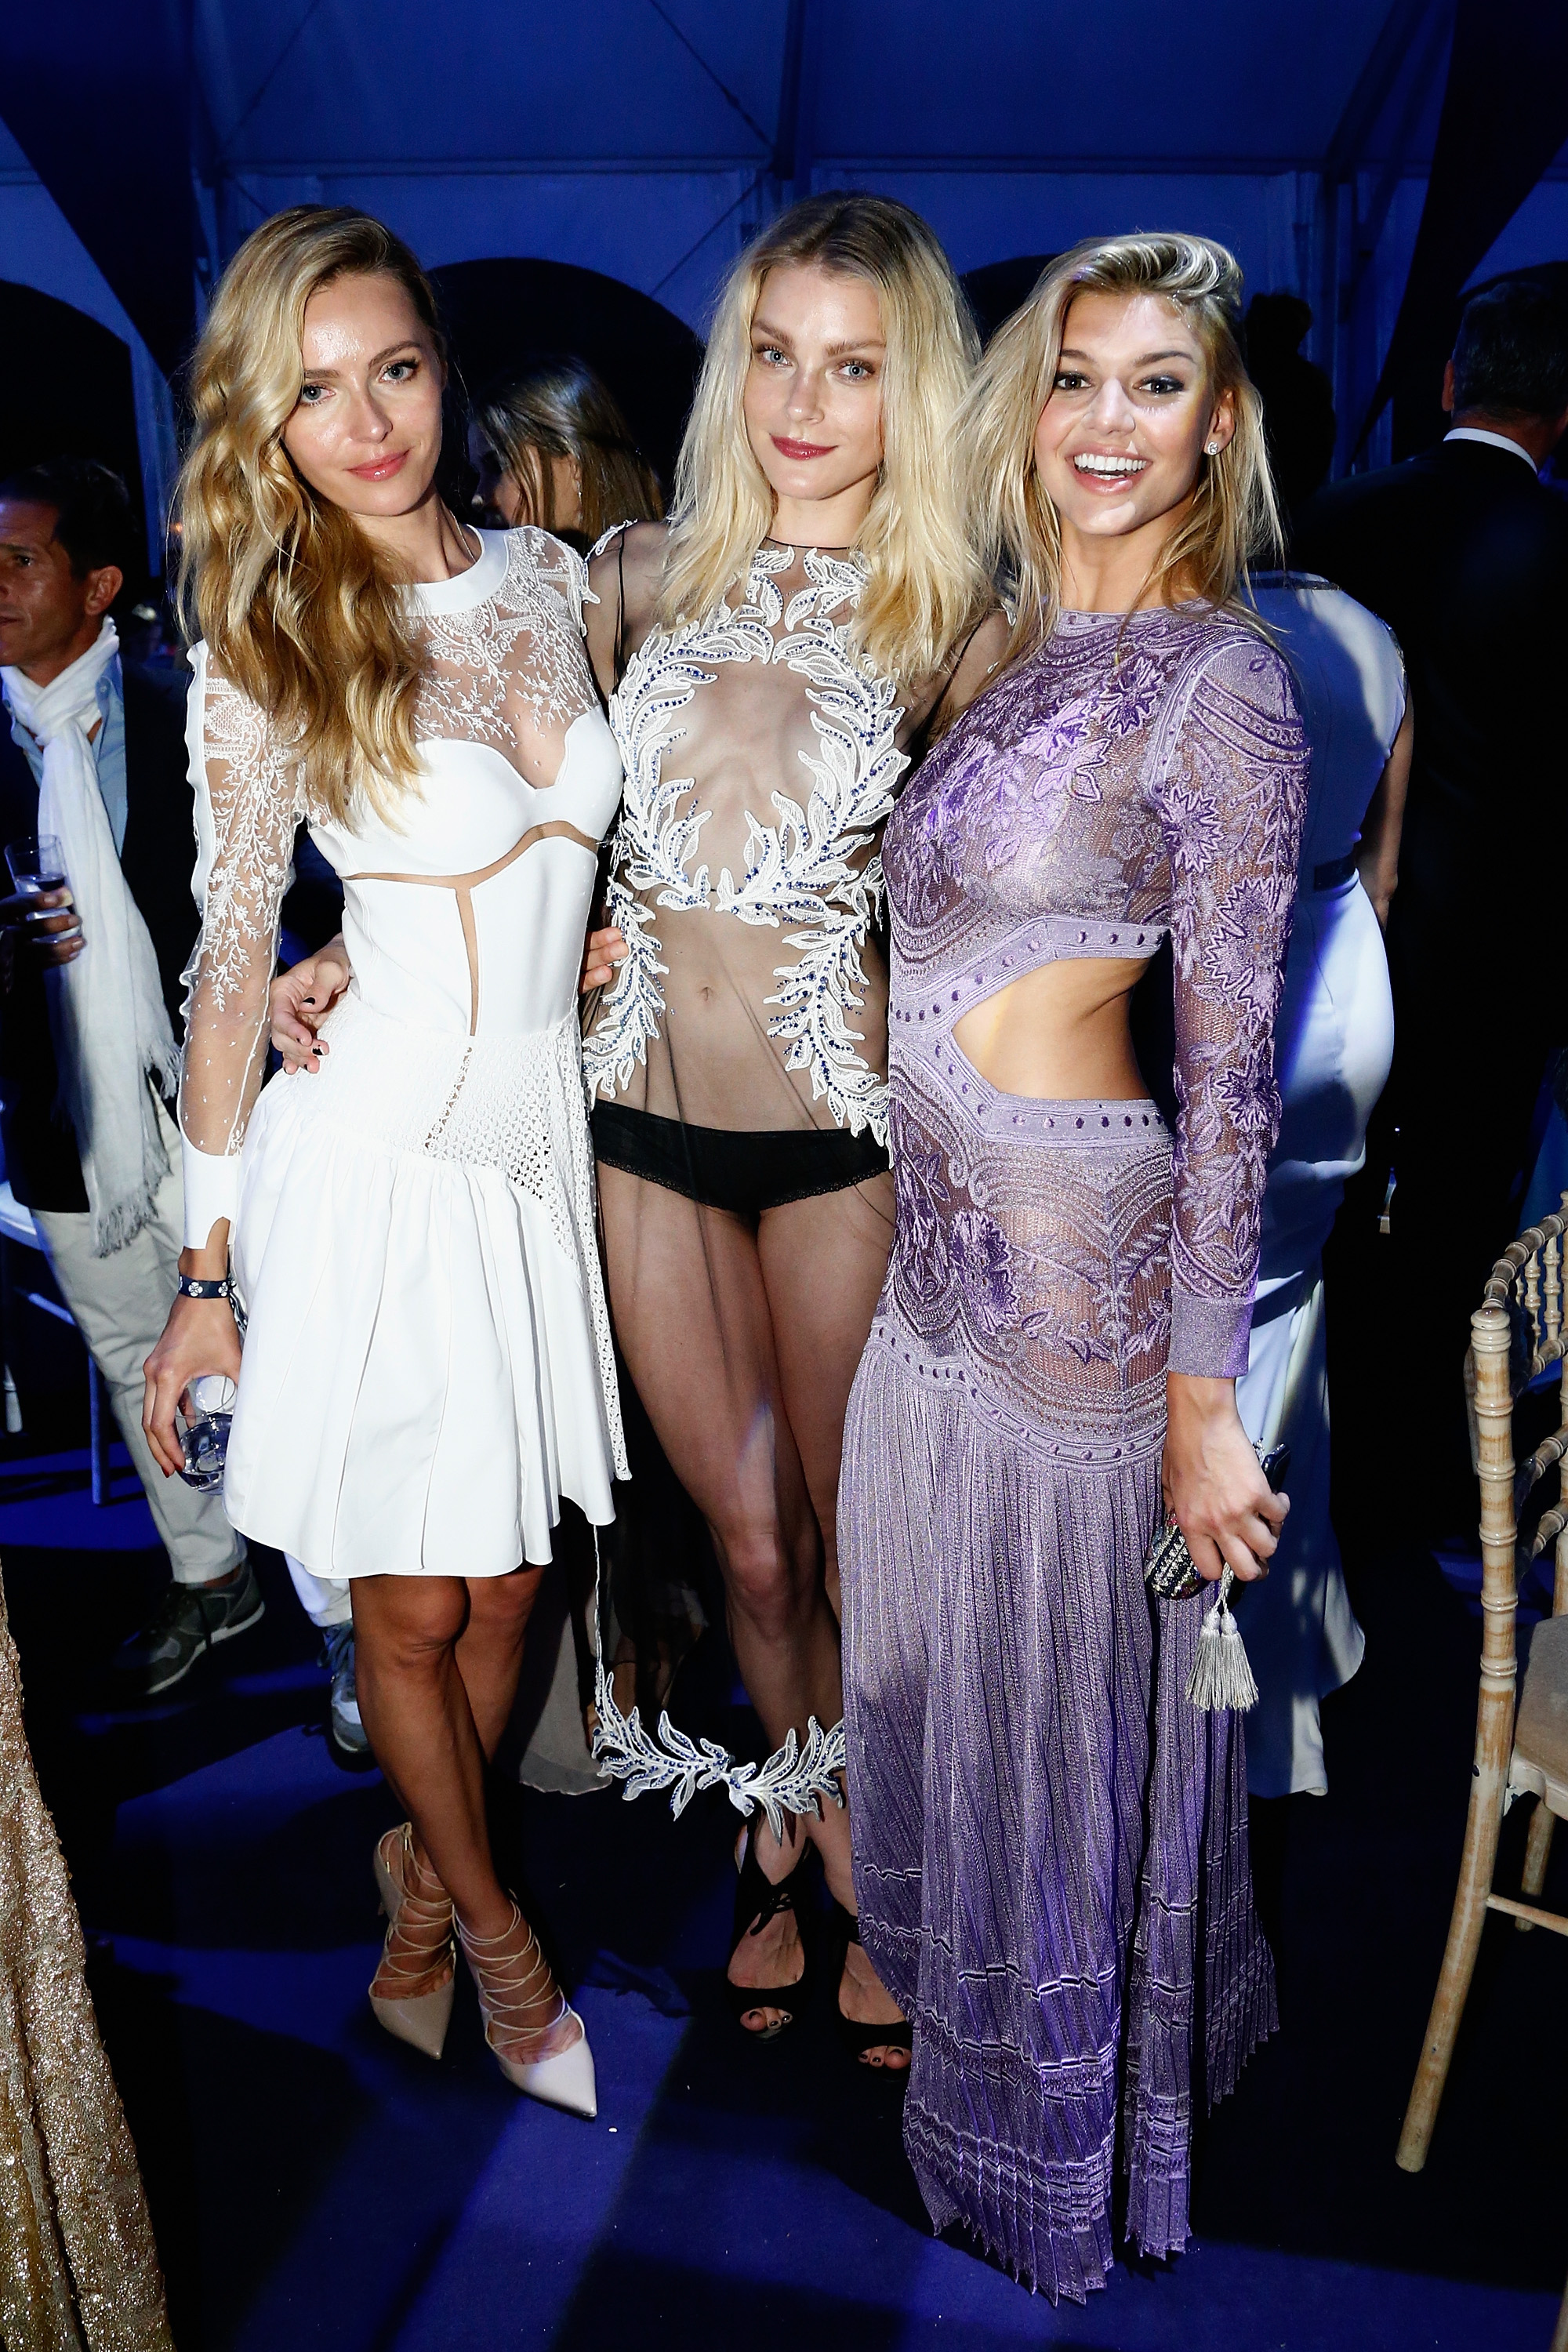 <p>If you thought (or hoped) the sheer trend was beginning to fade, think again. As the supermodels who attended Leonardo DiCaprio's charity dinner and auction overnight in St Tropez proved, less continues to be more. Click through to see all the sheer delights. </p>